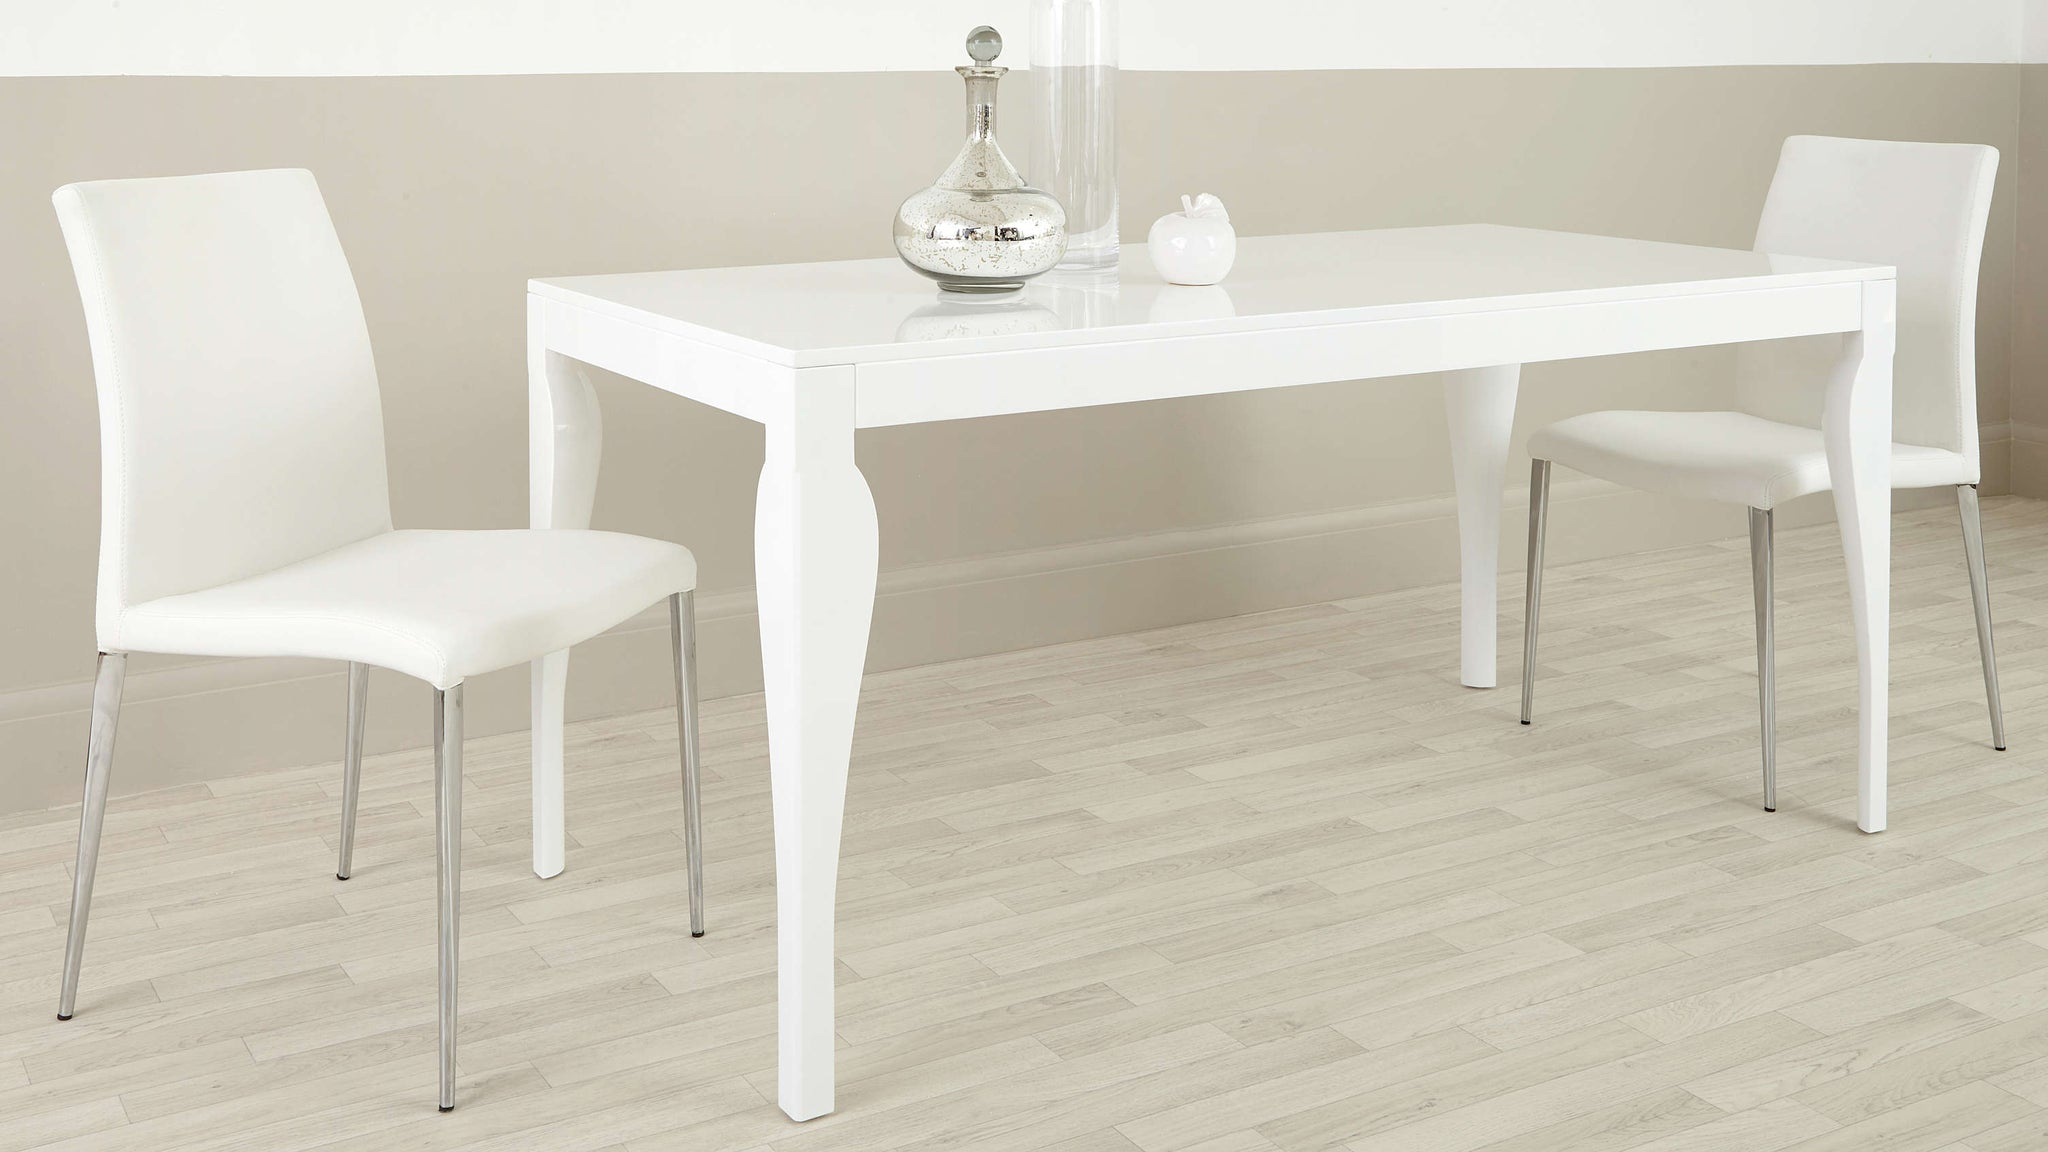 6 Seater White Gloss Dining Table UK Delivery